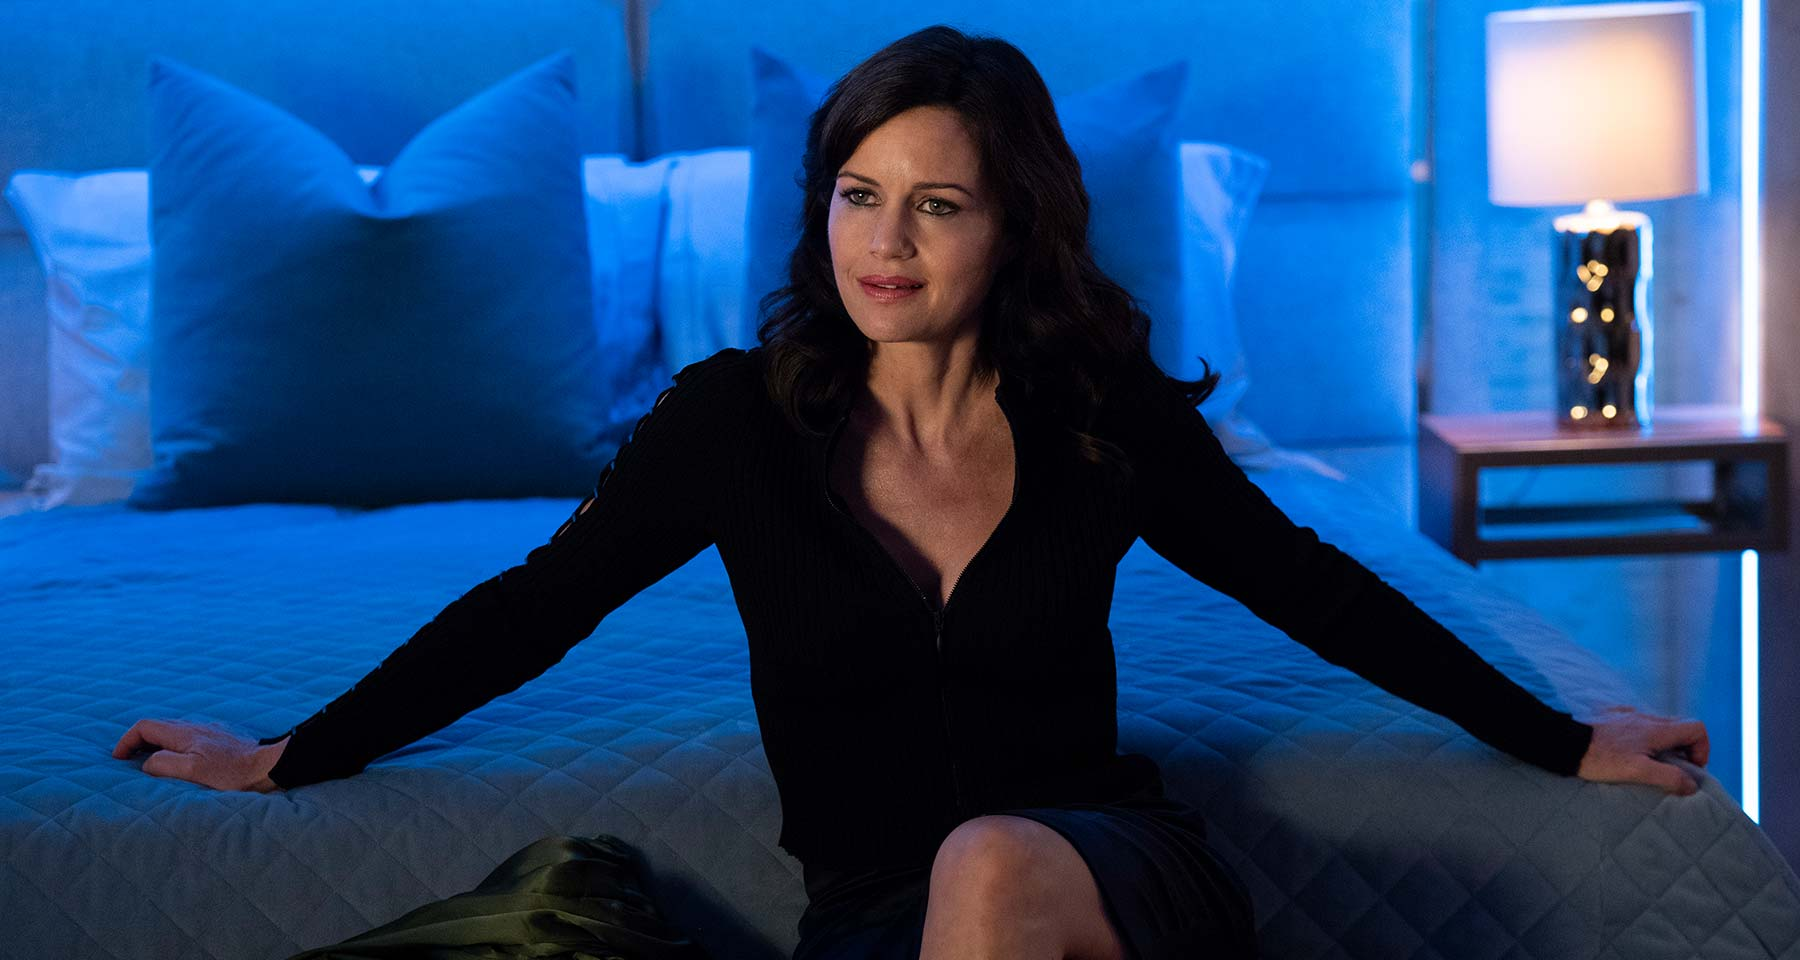 Jett Season 2: Release Date, Trailer, and Watch for Free!